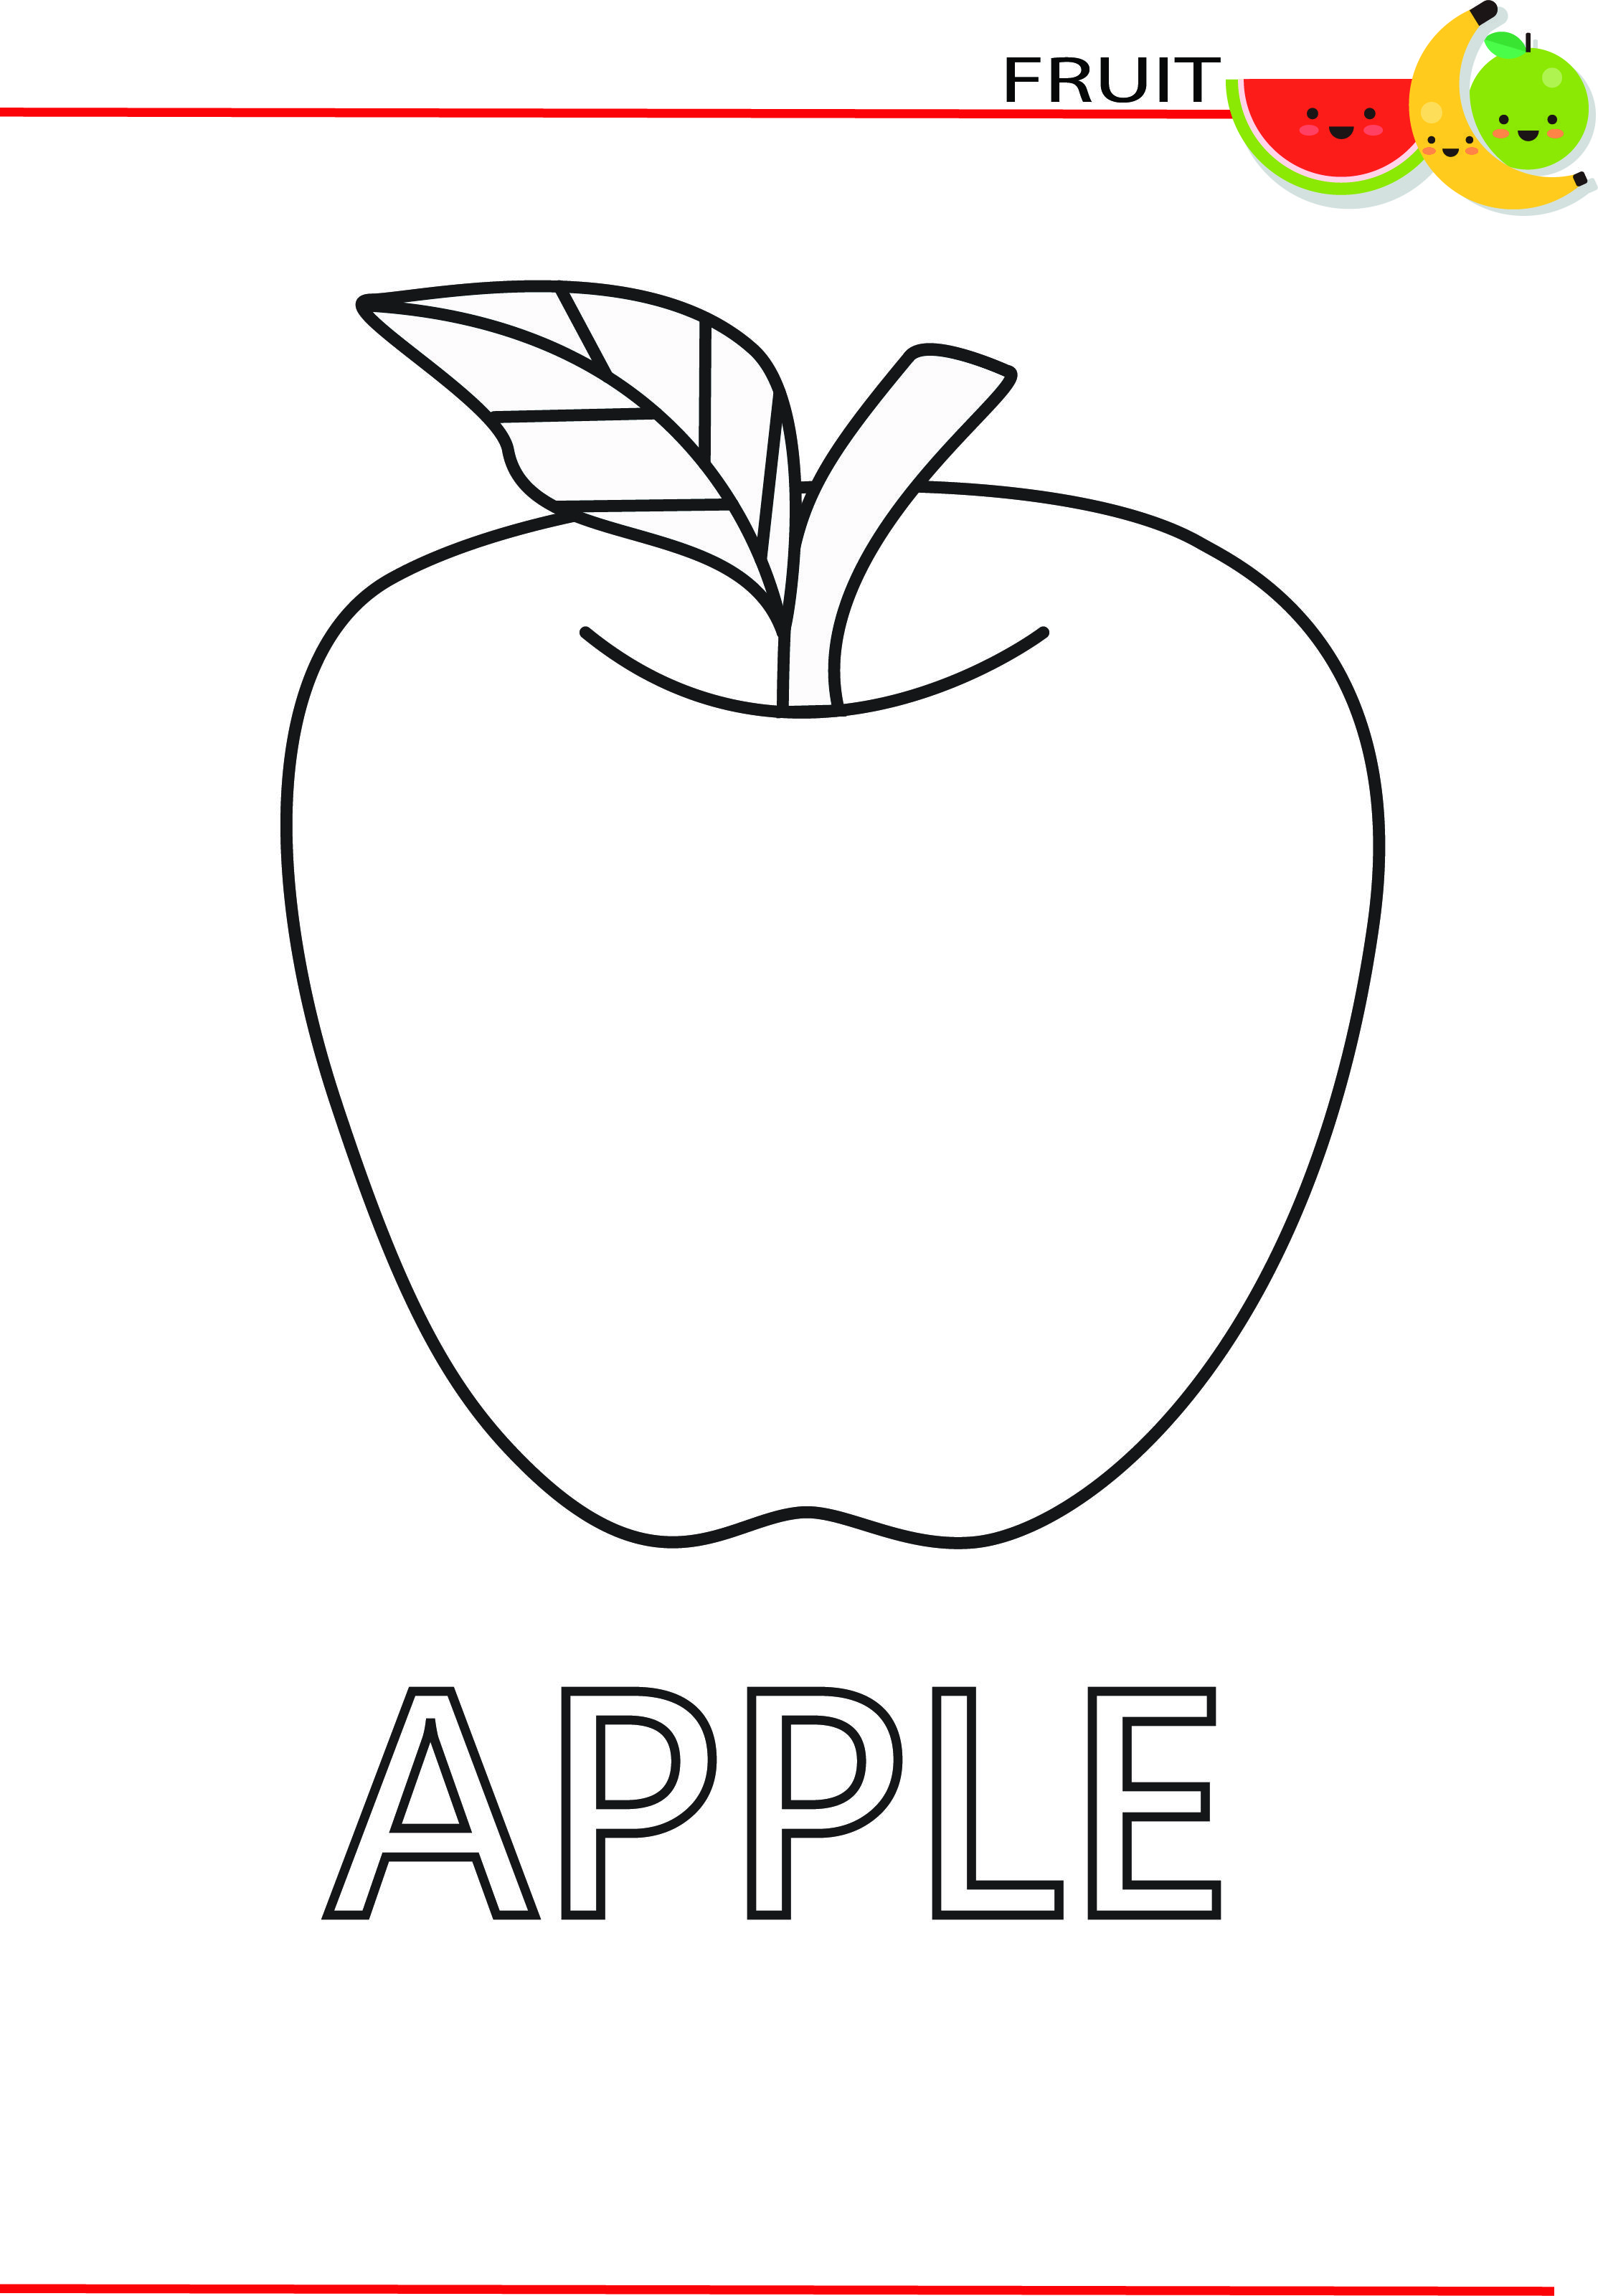 Drawing And Colouring Fruits Fruit Coloring Pages Toddler Coloring Book Fruits For Kids